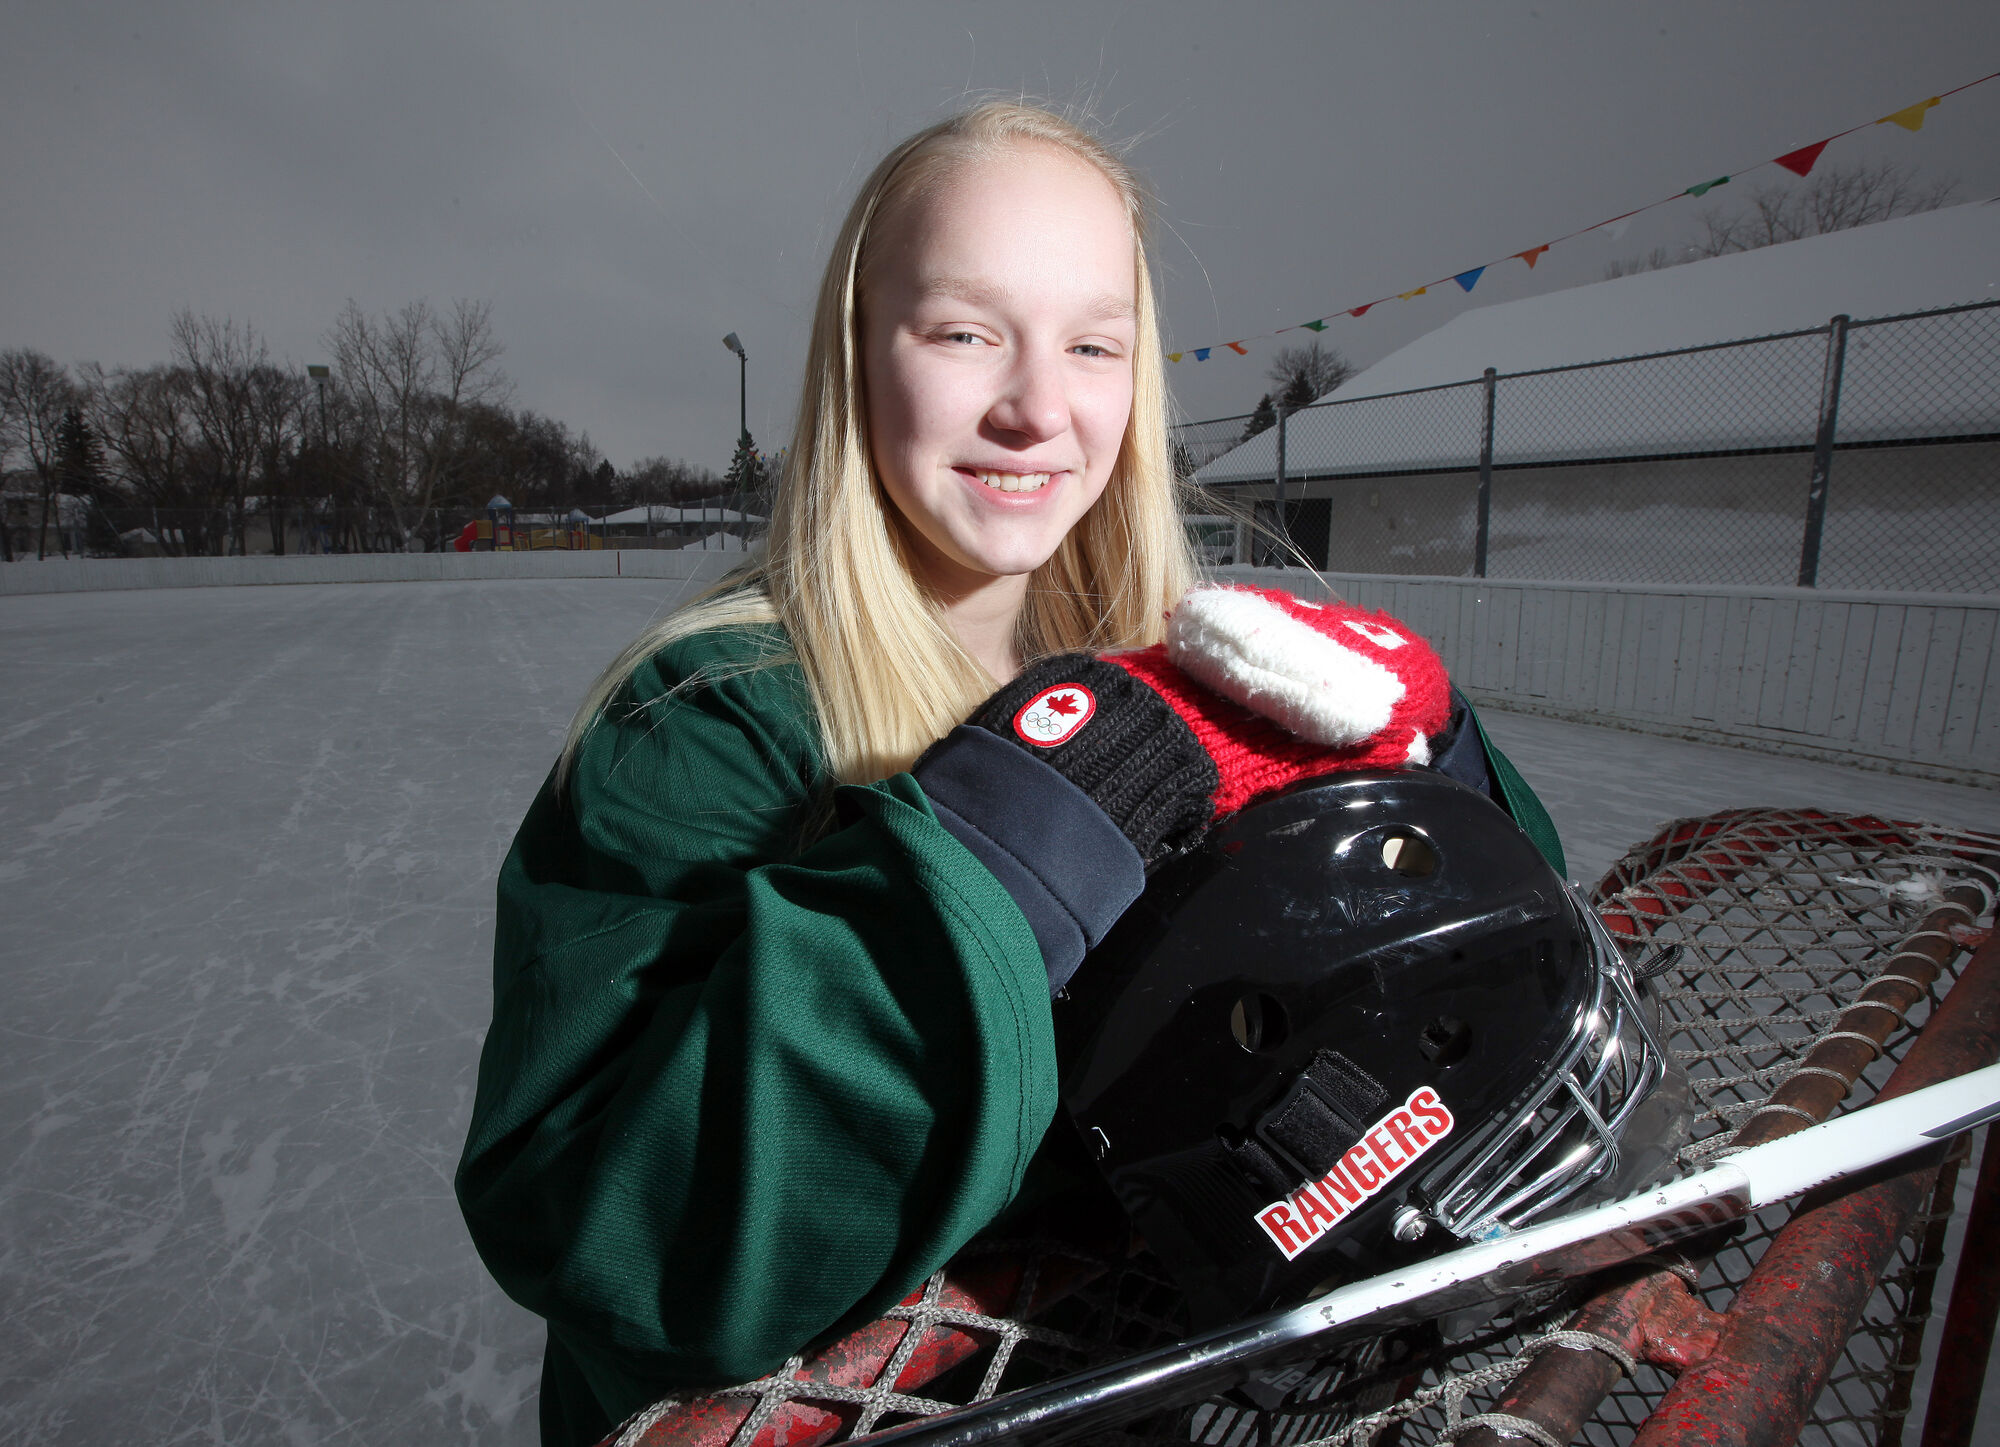 Coral Johnson, 15, got a concussion in hockey last month but has been cleared to resume play.